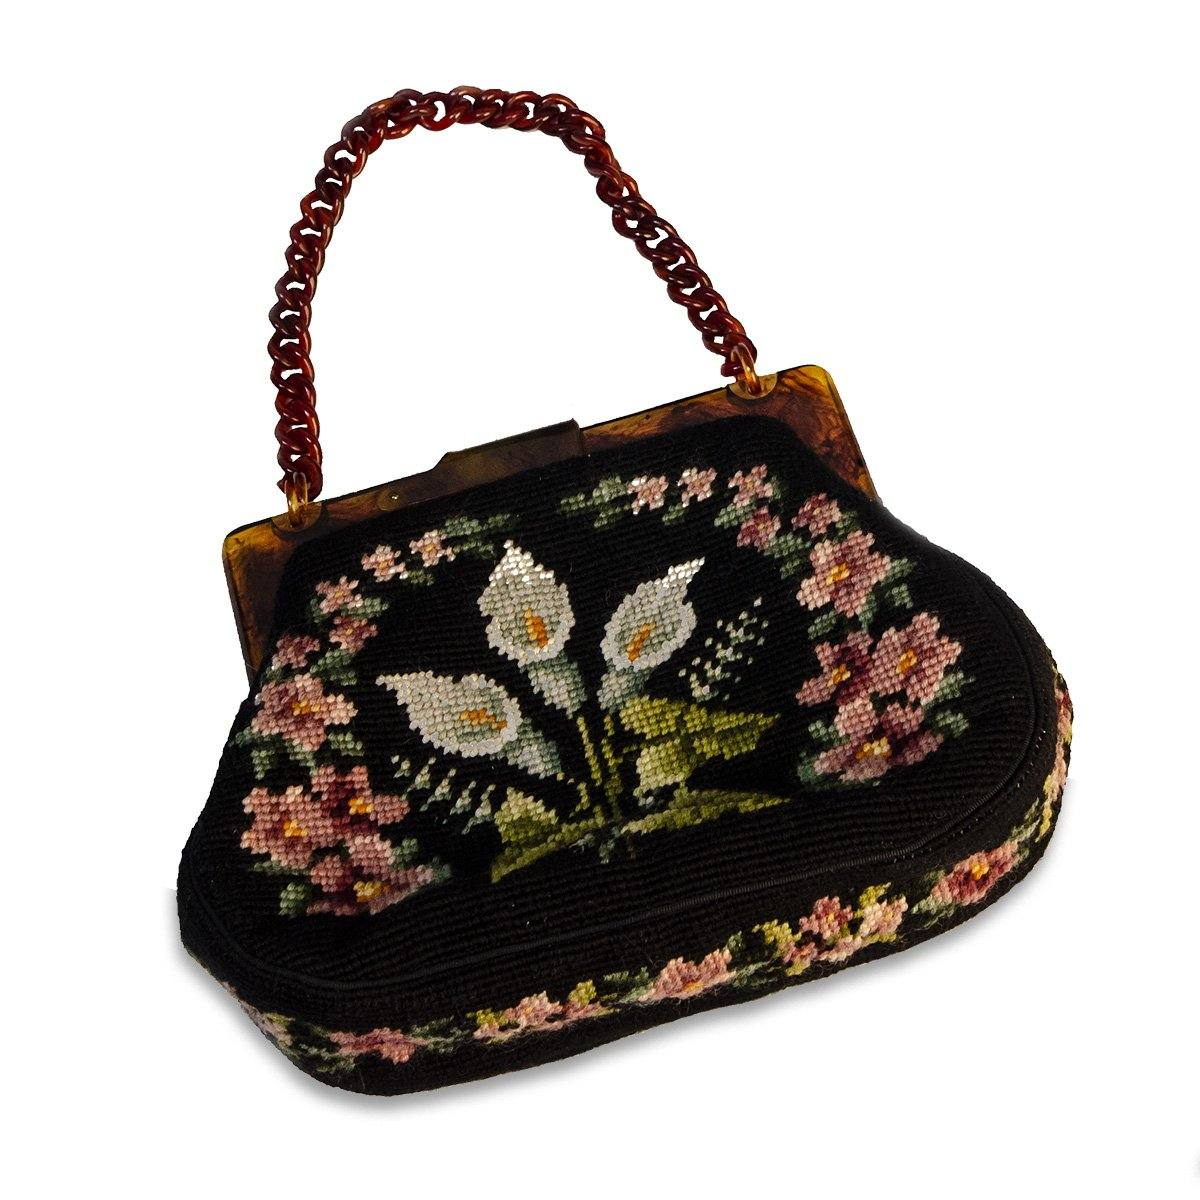 Maud Hundley Needlepoint purse, Black, Pink, Blue, White Floral